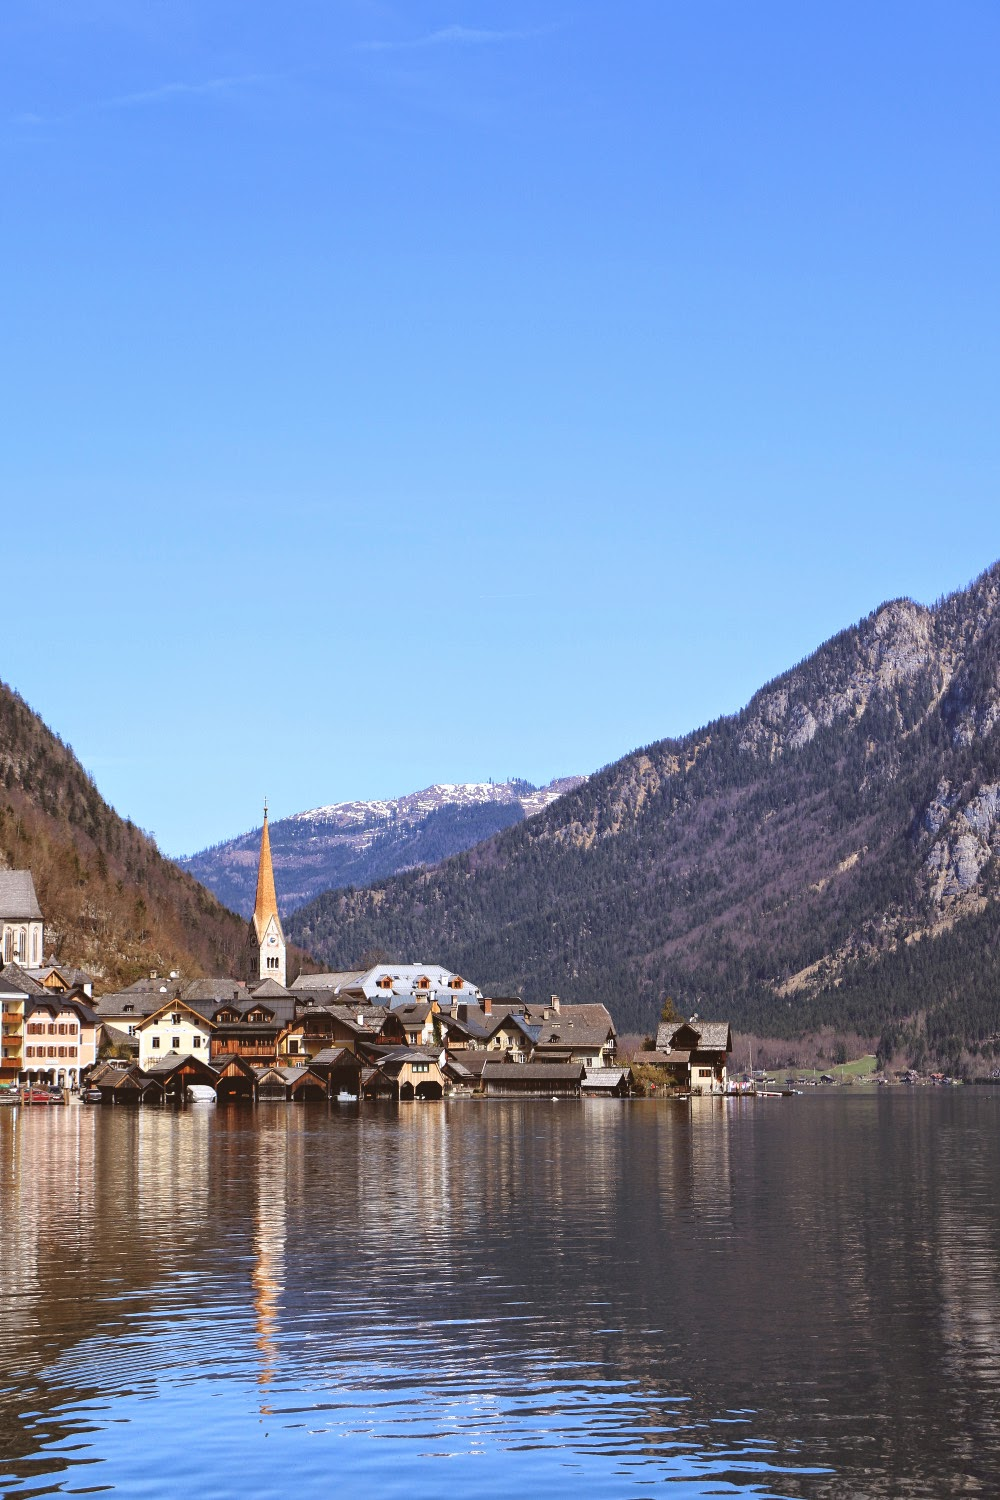 Boating in Hallstatt, Austria